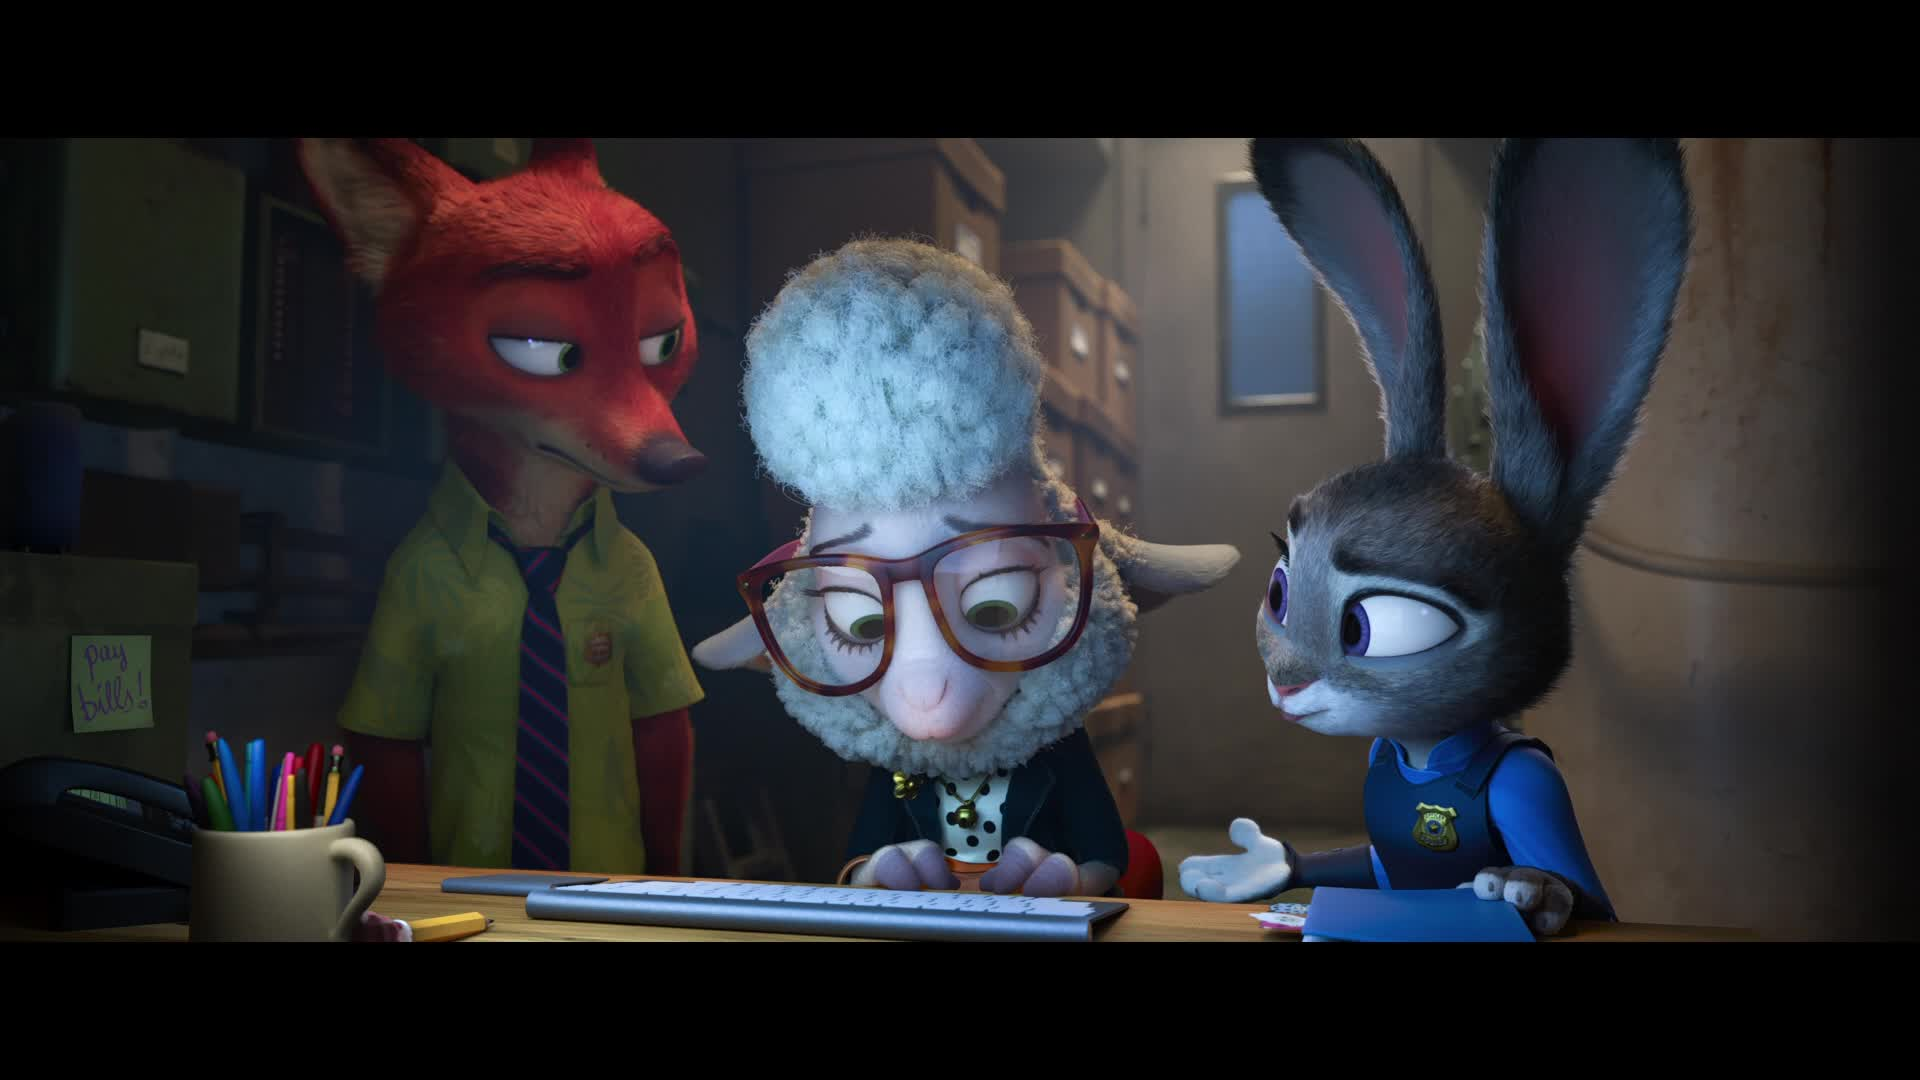 Zootopia Characters listNangiReport a problem2 members currently on the forums :Anonymous, Majestic-12 [Bot]Zootopia reads and moreSite activityQuick menuQuestions?Ask and get answers here!Log in